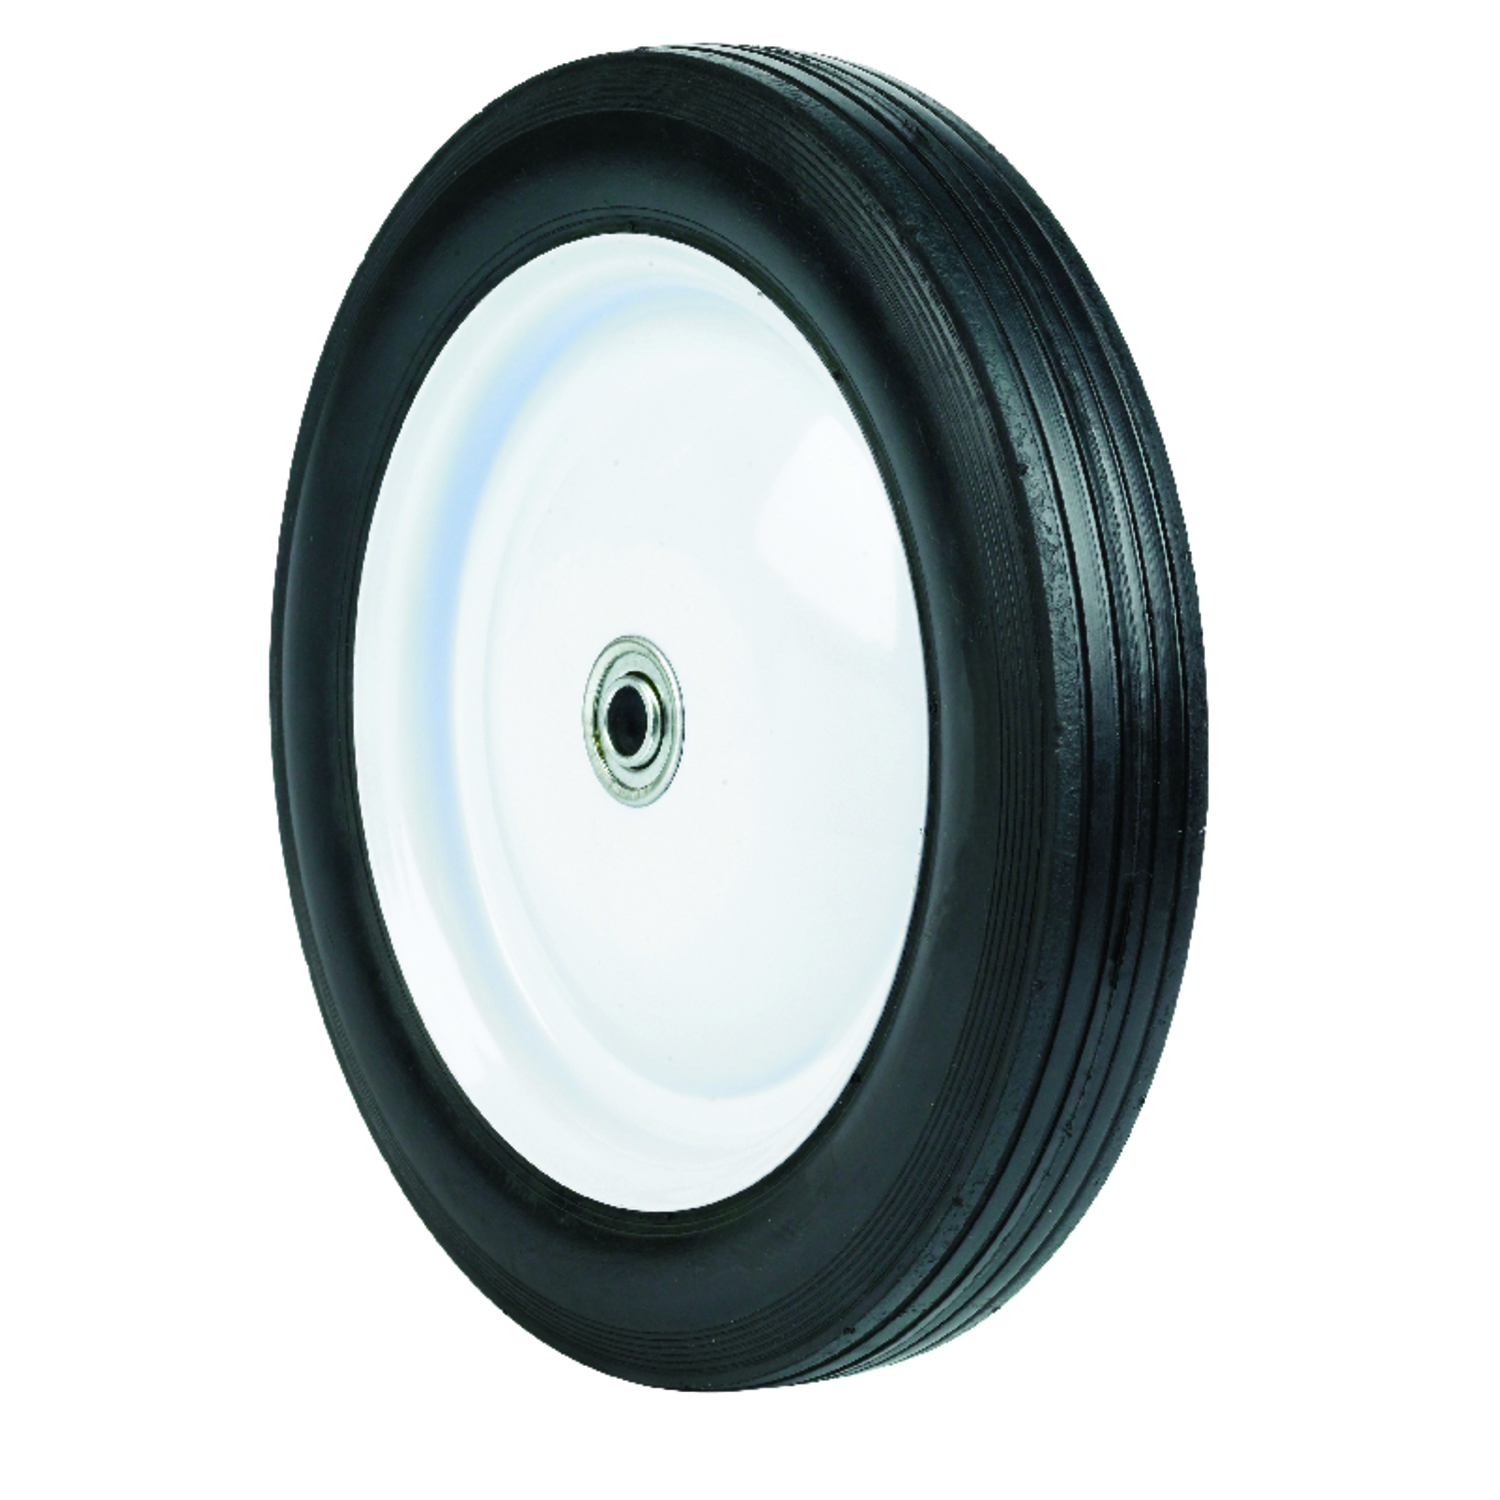 Arnold  1.75 in. W x 10 in. Dia. 80 lb. Lawn Mower Replacement Wheel  Steel